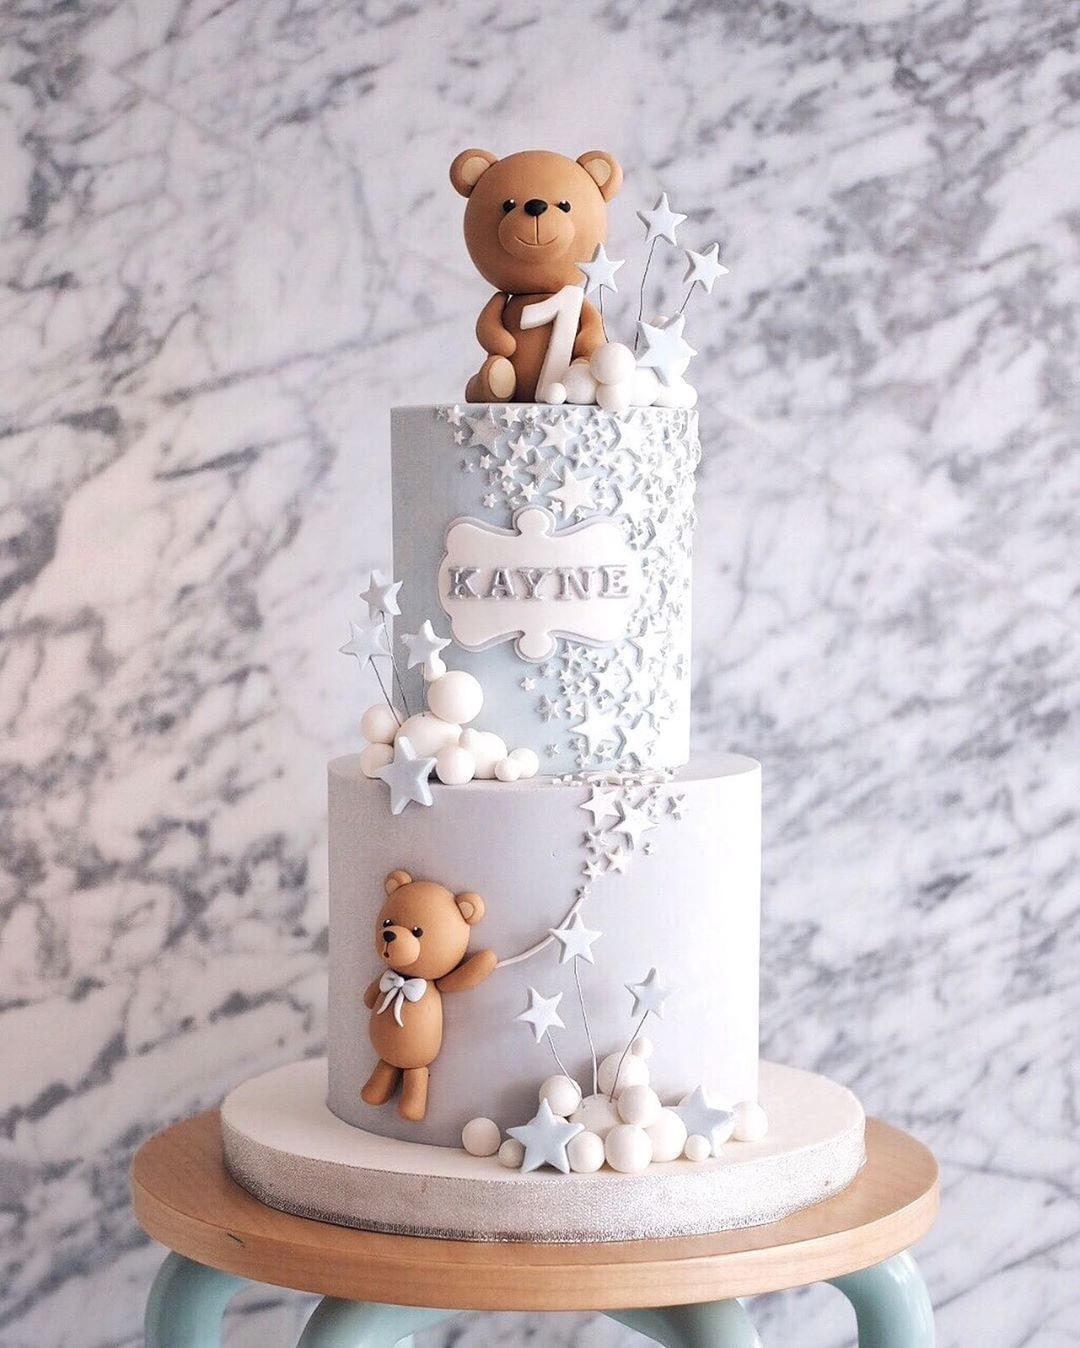 "Cakes that inspire on Instagram: ""Awww this is so sweet! I love the teddys!! ❤️⠀⠀⠀⠀⠀⠀⠀⠀⠀ -⠀⠀⠀⠀⠀⠀⠀⠀⠀ -⠀⠀⠀⠀⠀⠀⠀⠀⠀ -⠀⠀⠀⠀⠀⠀⠀⠀⠀ By @onemorebake⠀⠀⠀⠀⠀⠀⠀⠀⠀ .⠀⠀⠀⠀⠀⠀⠀⠀⠀ -⠀⠀⠀⠀⠀⠀⠀⠀⠀…"""